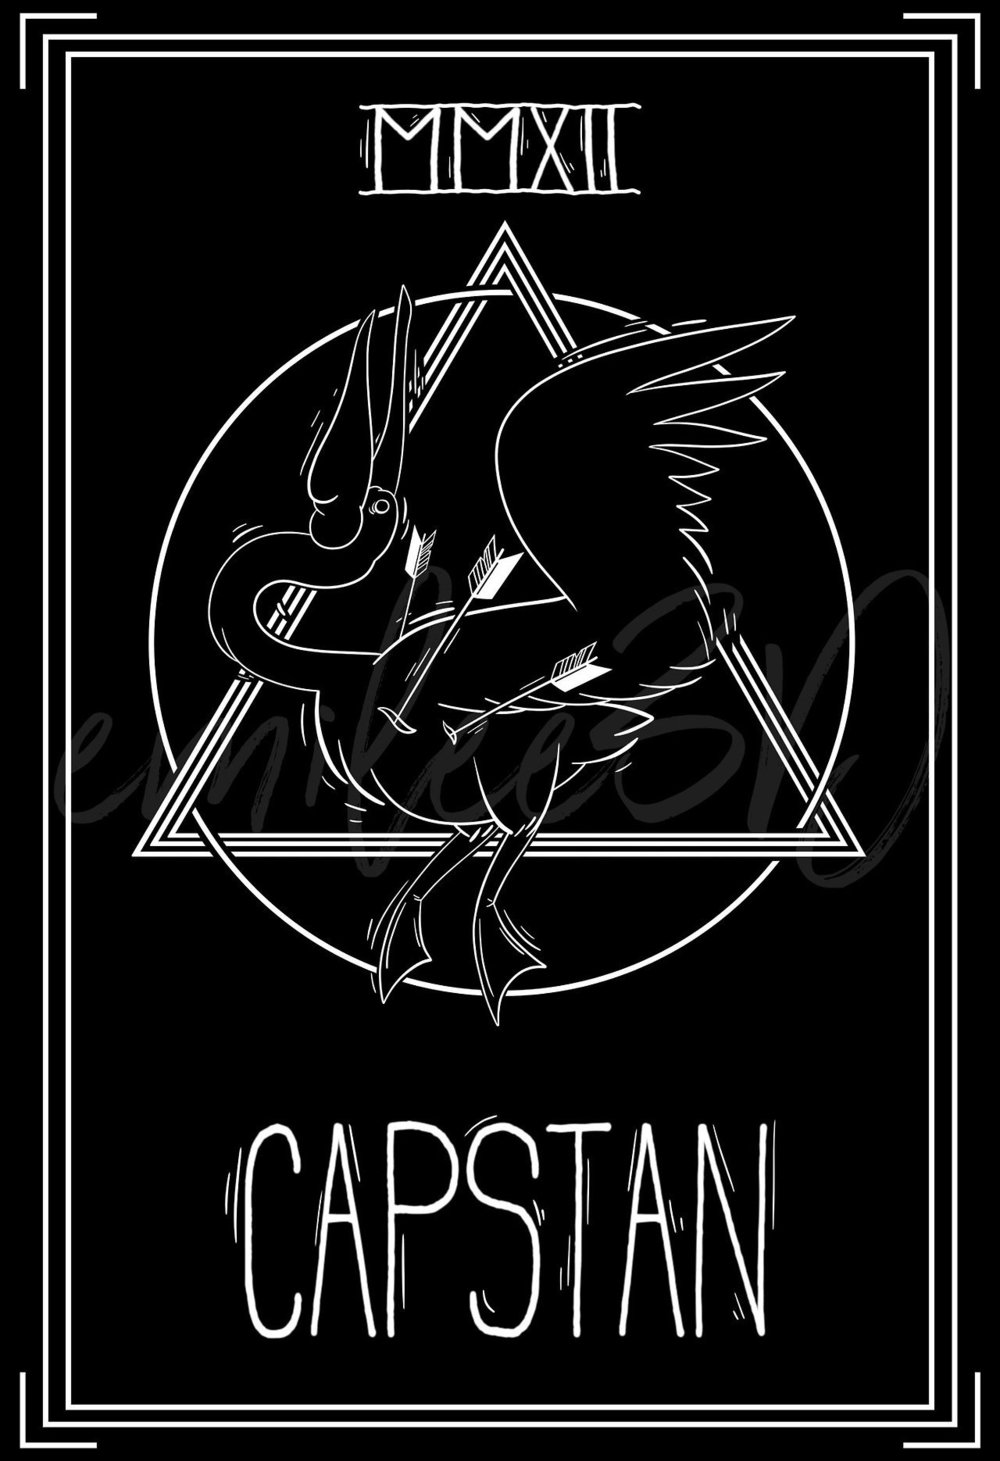 Graphic design for the band Capstan